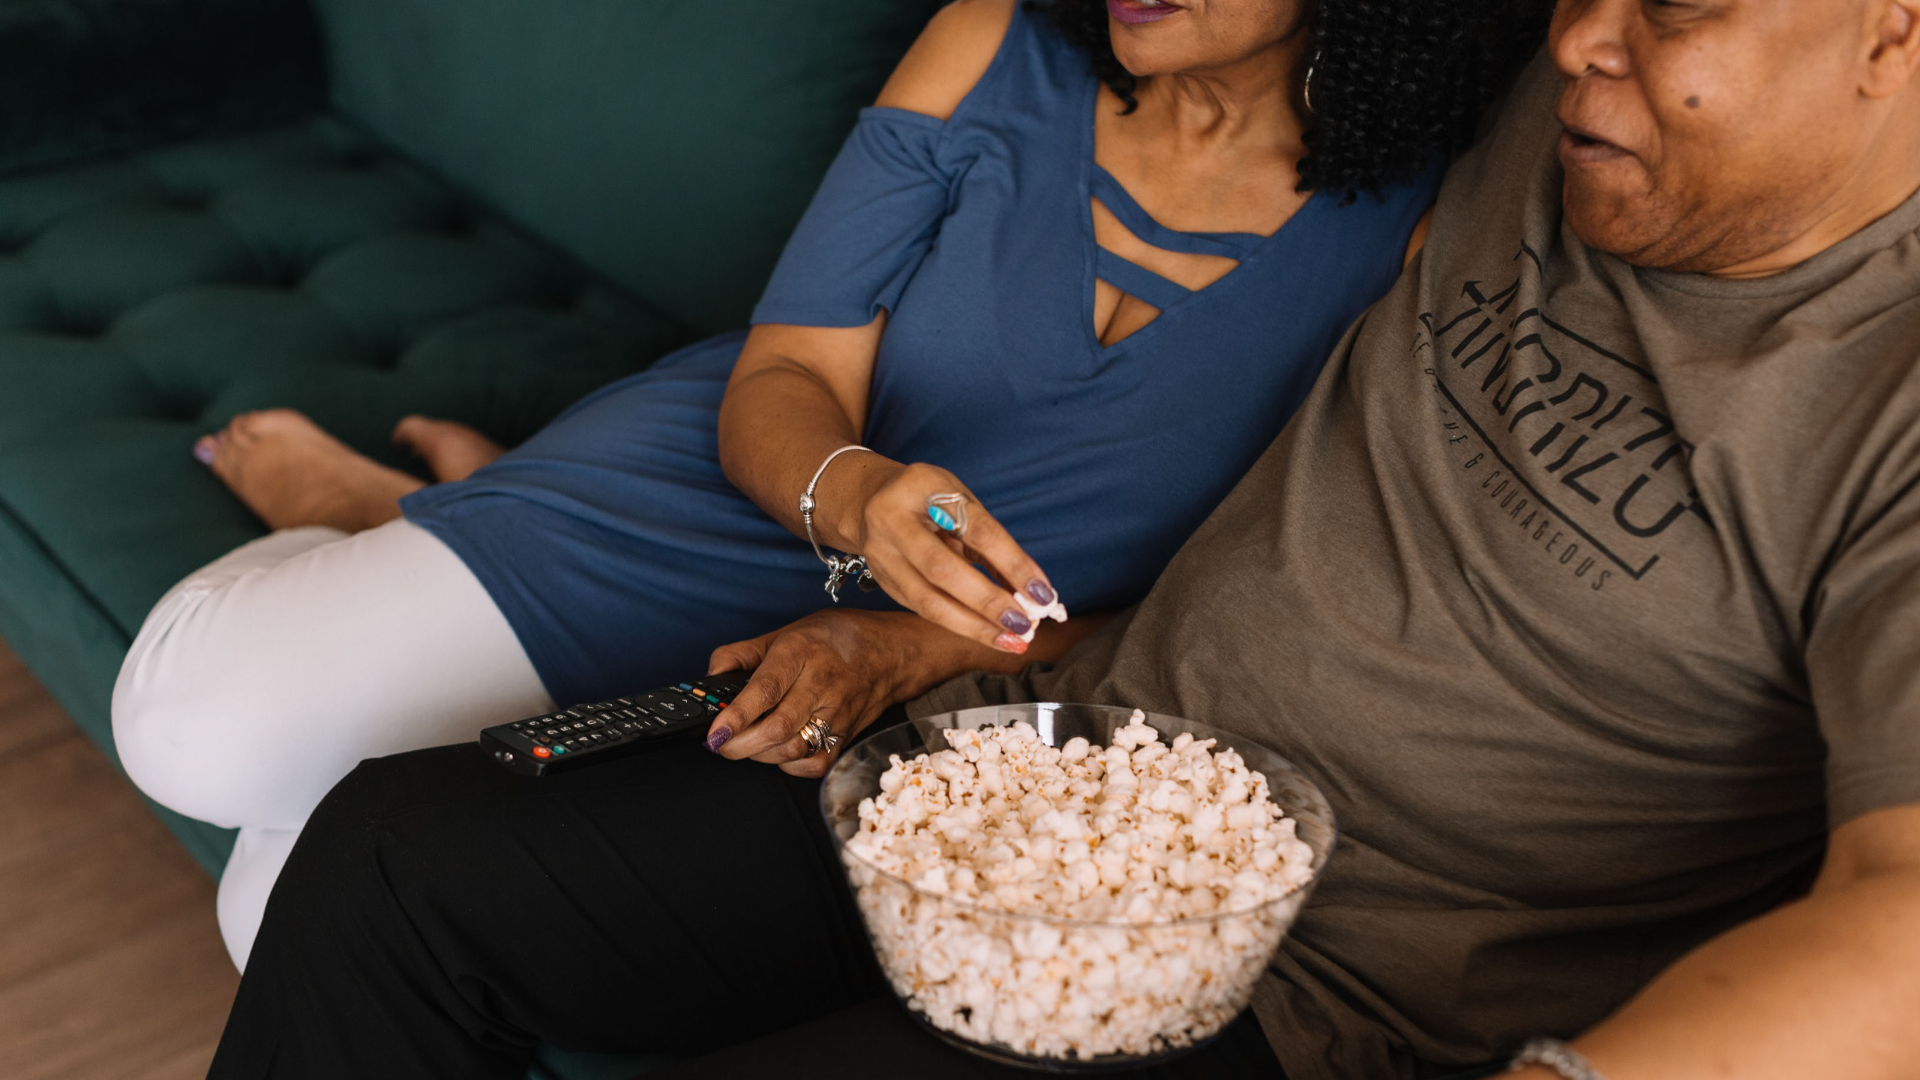 Man and woman watching Netflix on cough while eating popcorn